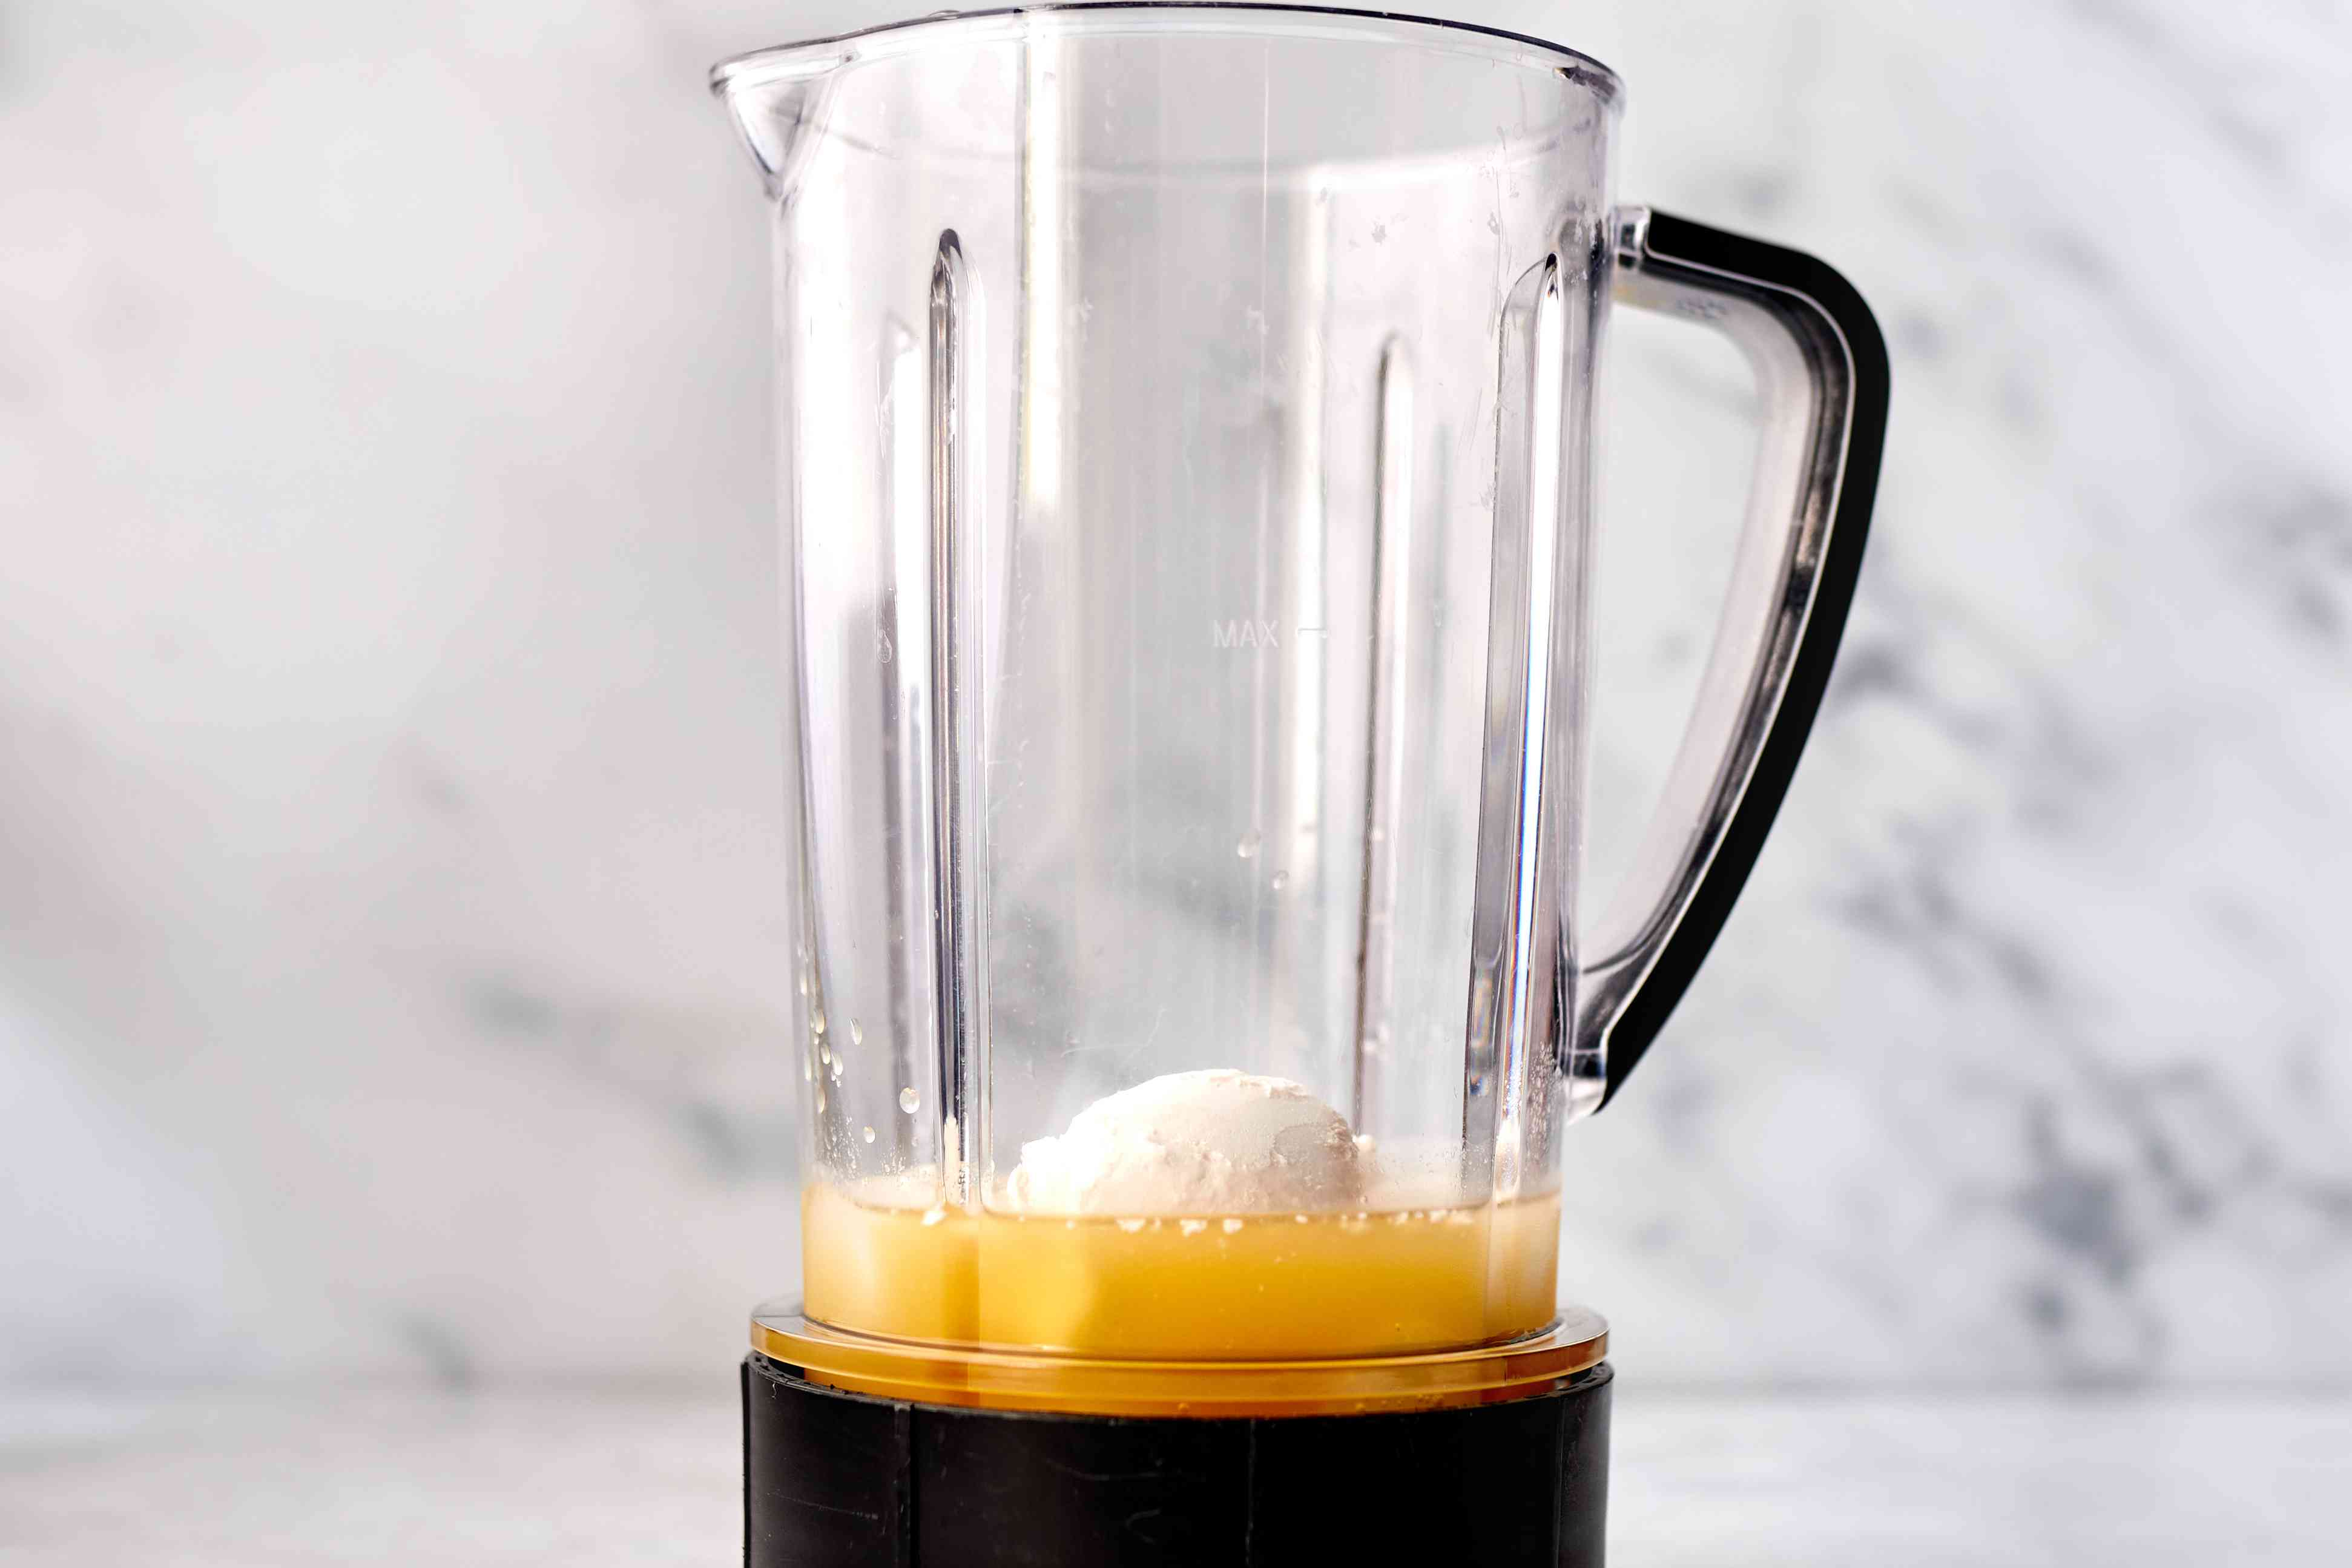 ice, pineapple juice, and cream of coconut in a blender